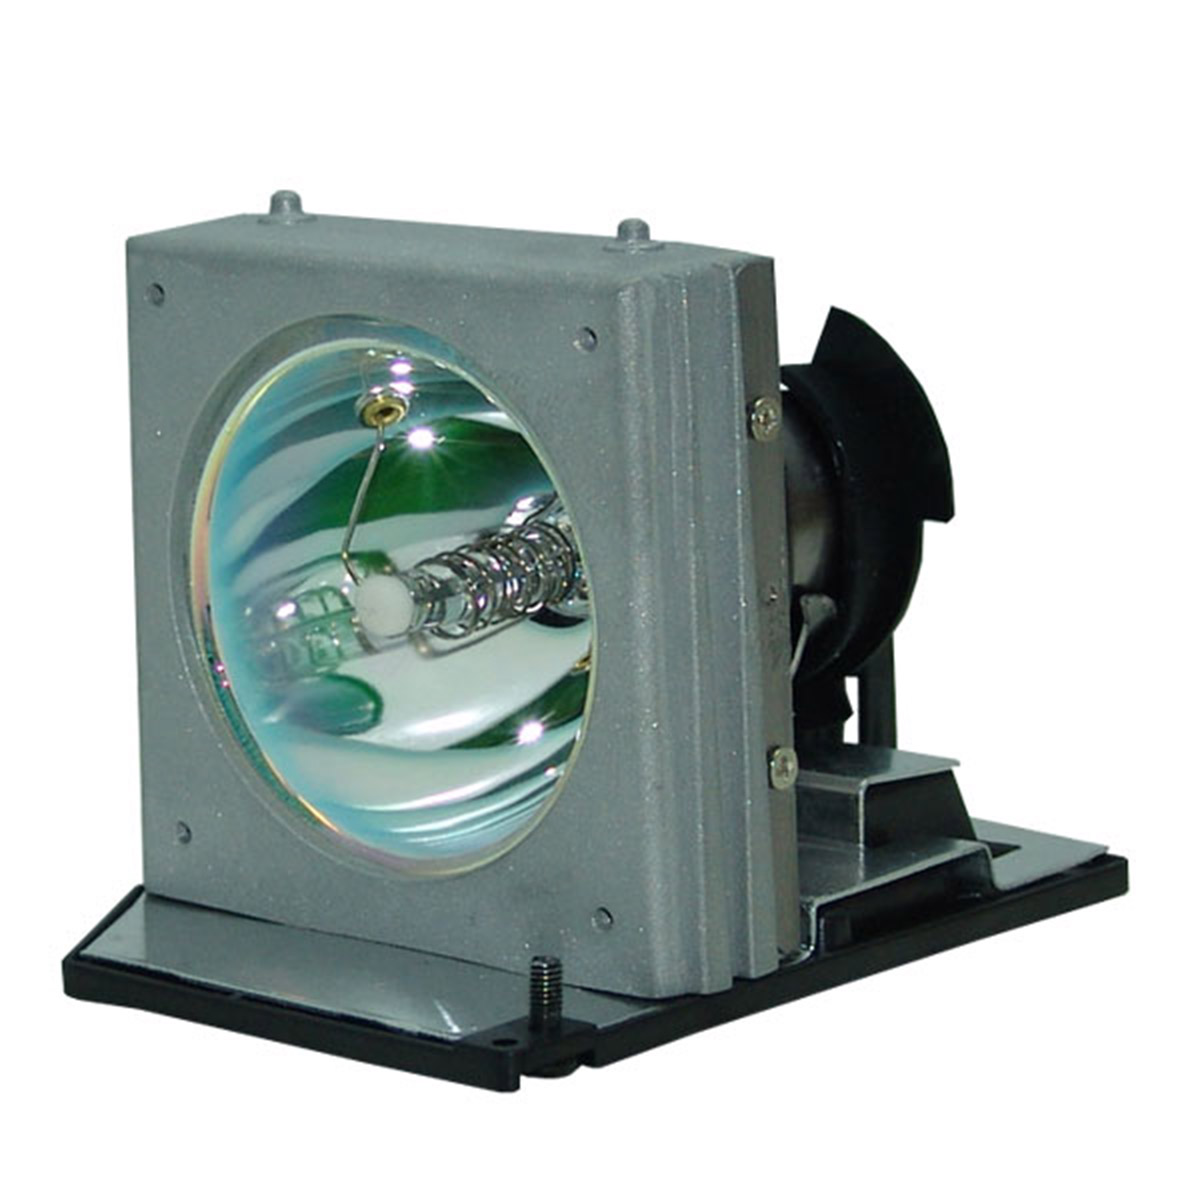 Projector Lamp Assembly with Genuine Original Phoenix Bulb inside. SP.85S01GC01 Optoma Projector Lamp Replacement